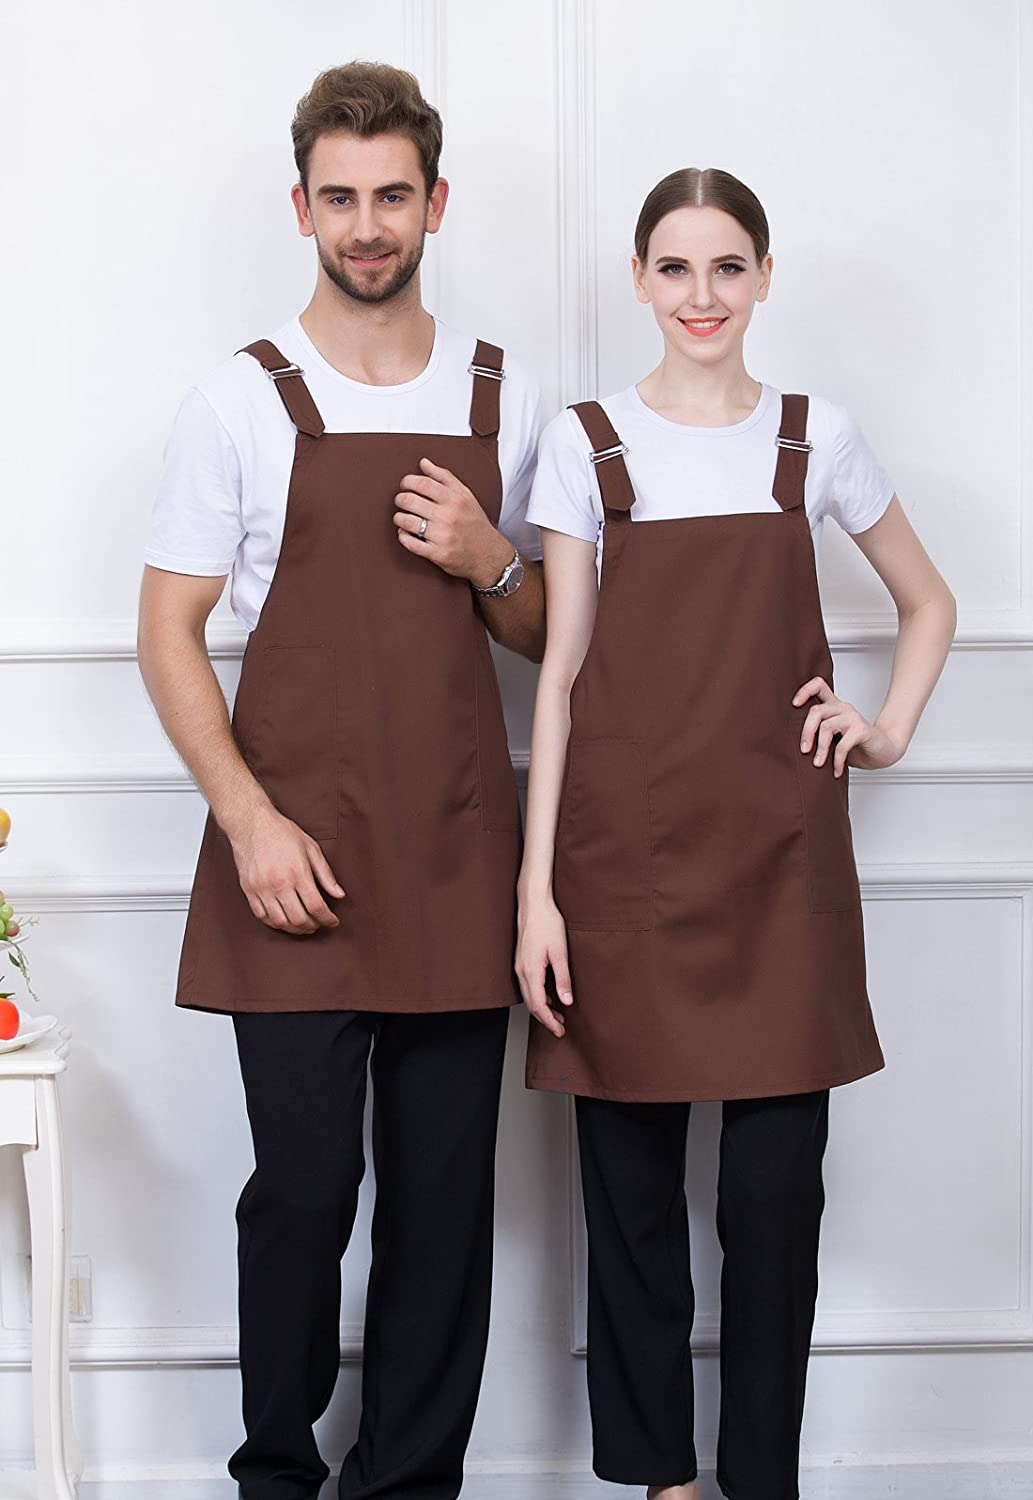 FEOYA Unisex Solid Color Aprons Overalls Soft Cotton Polyester Apron Kitchen Cooking Clothes Men Women Water Resistant Kitchen Aprons Dish Washing Chef Aprons Brown